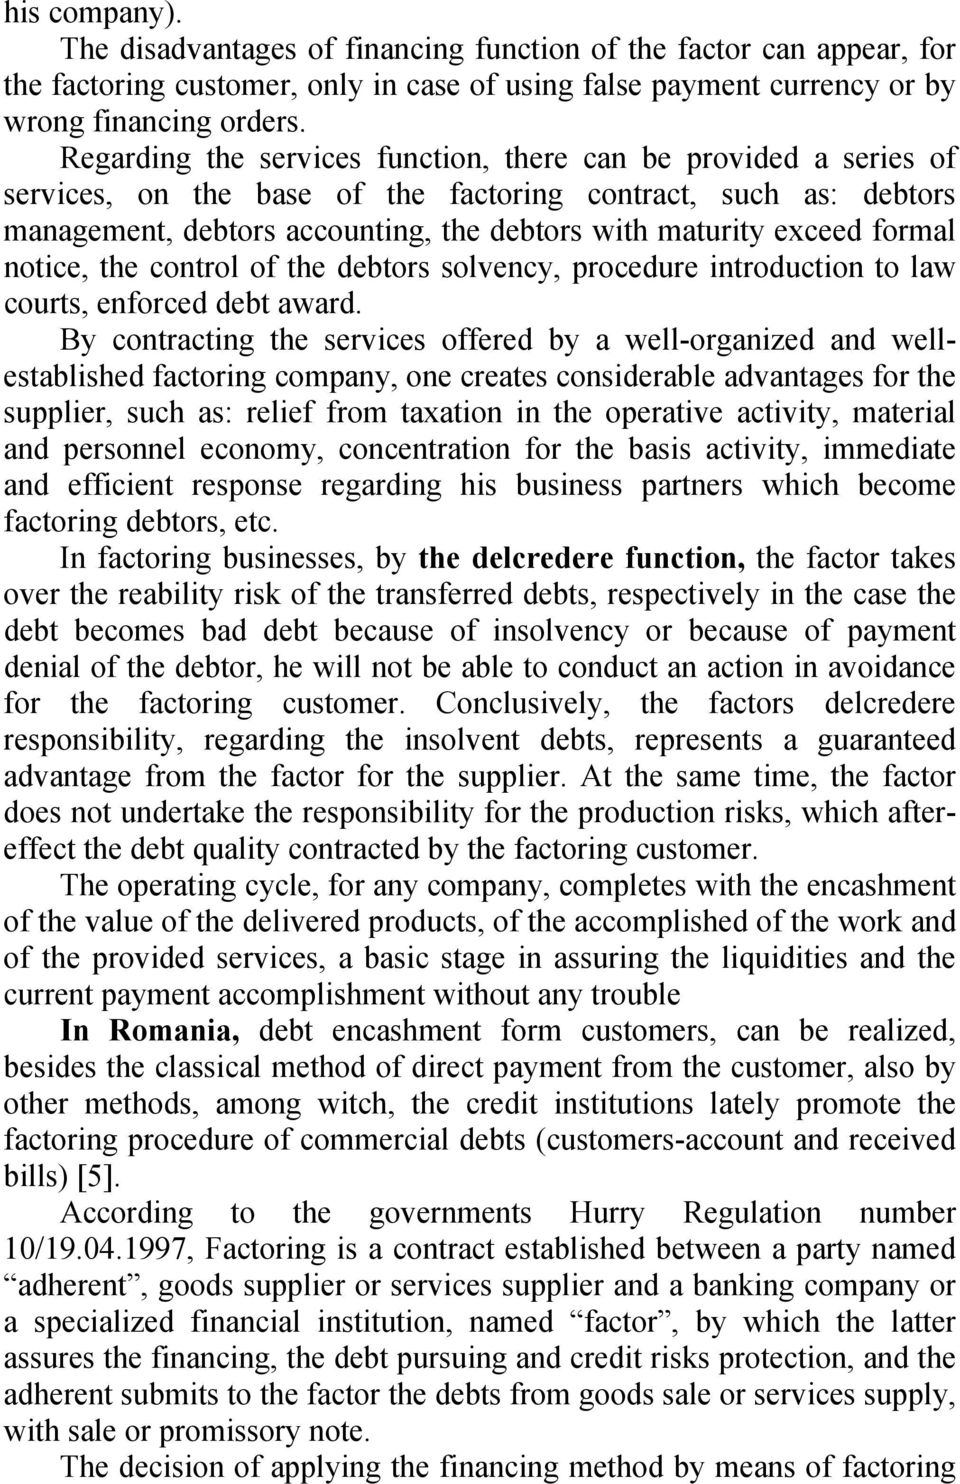 formal notice, the control of the debtors solvency, procedure introduction to law courts, enforced debt award.